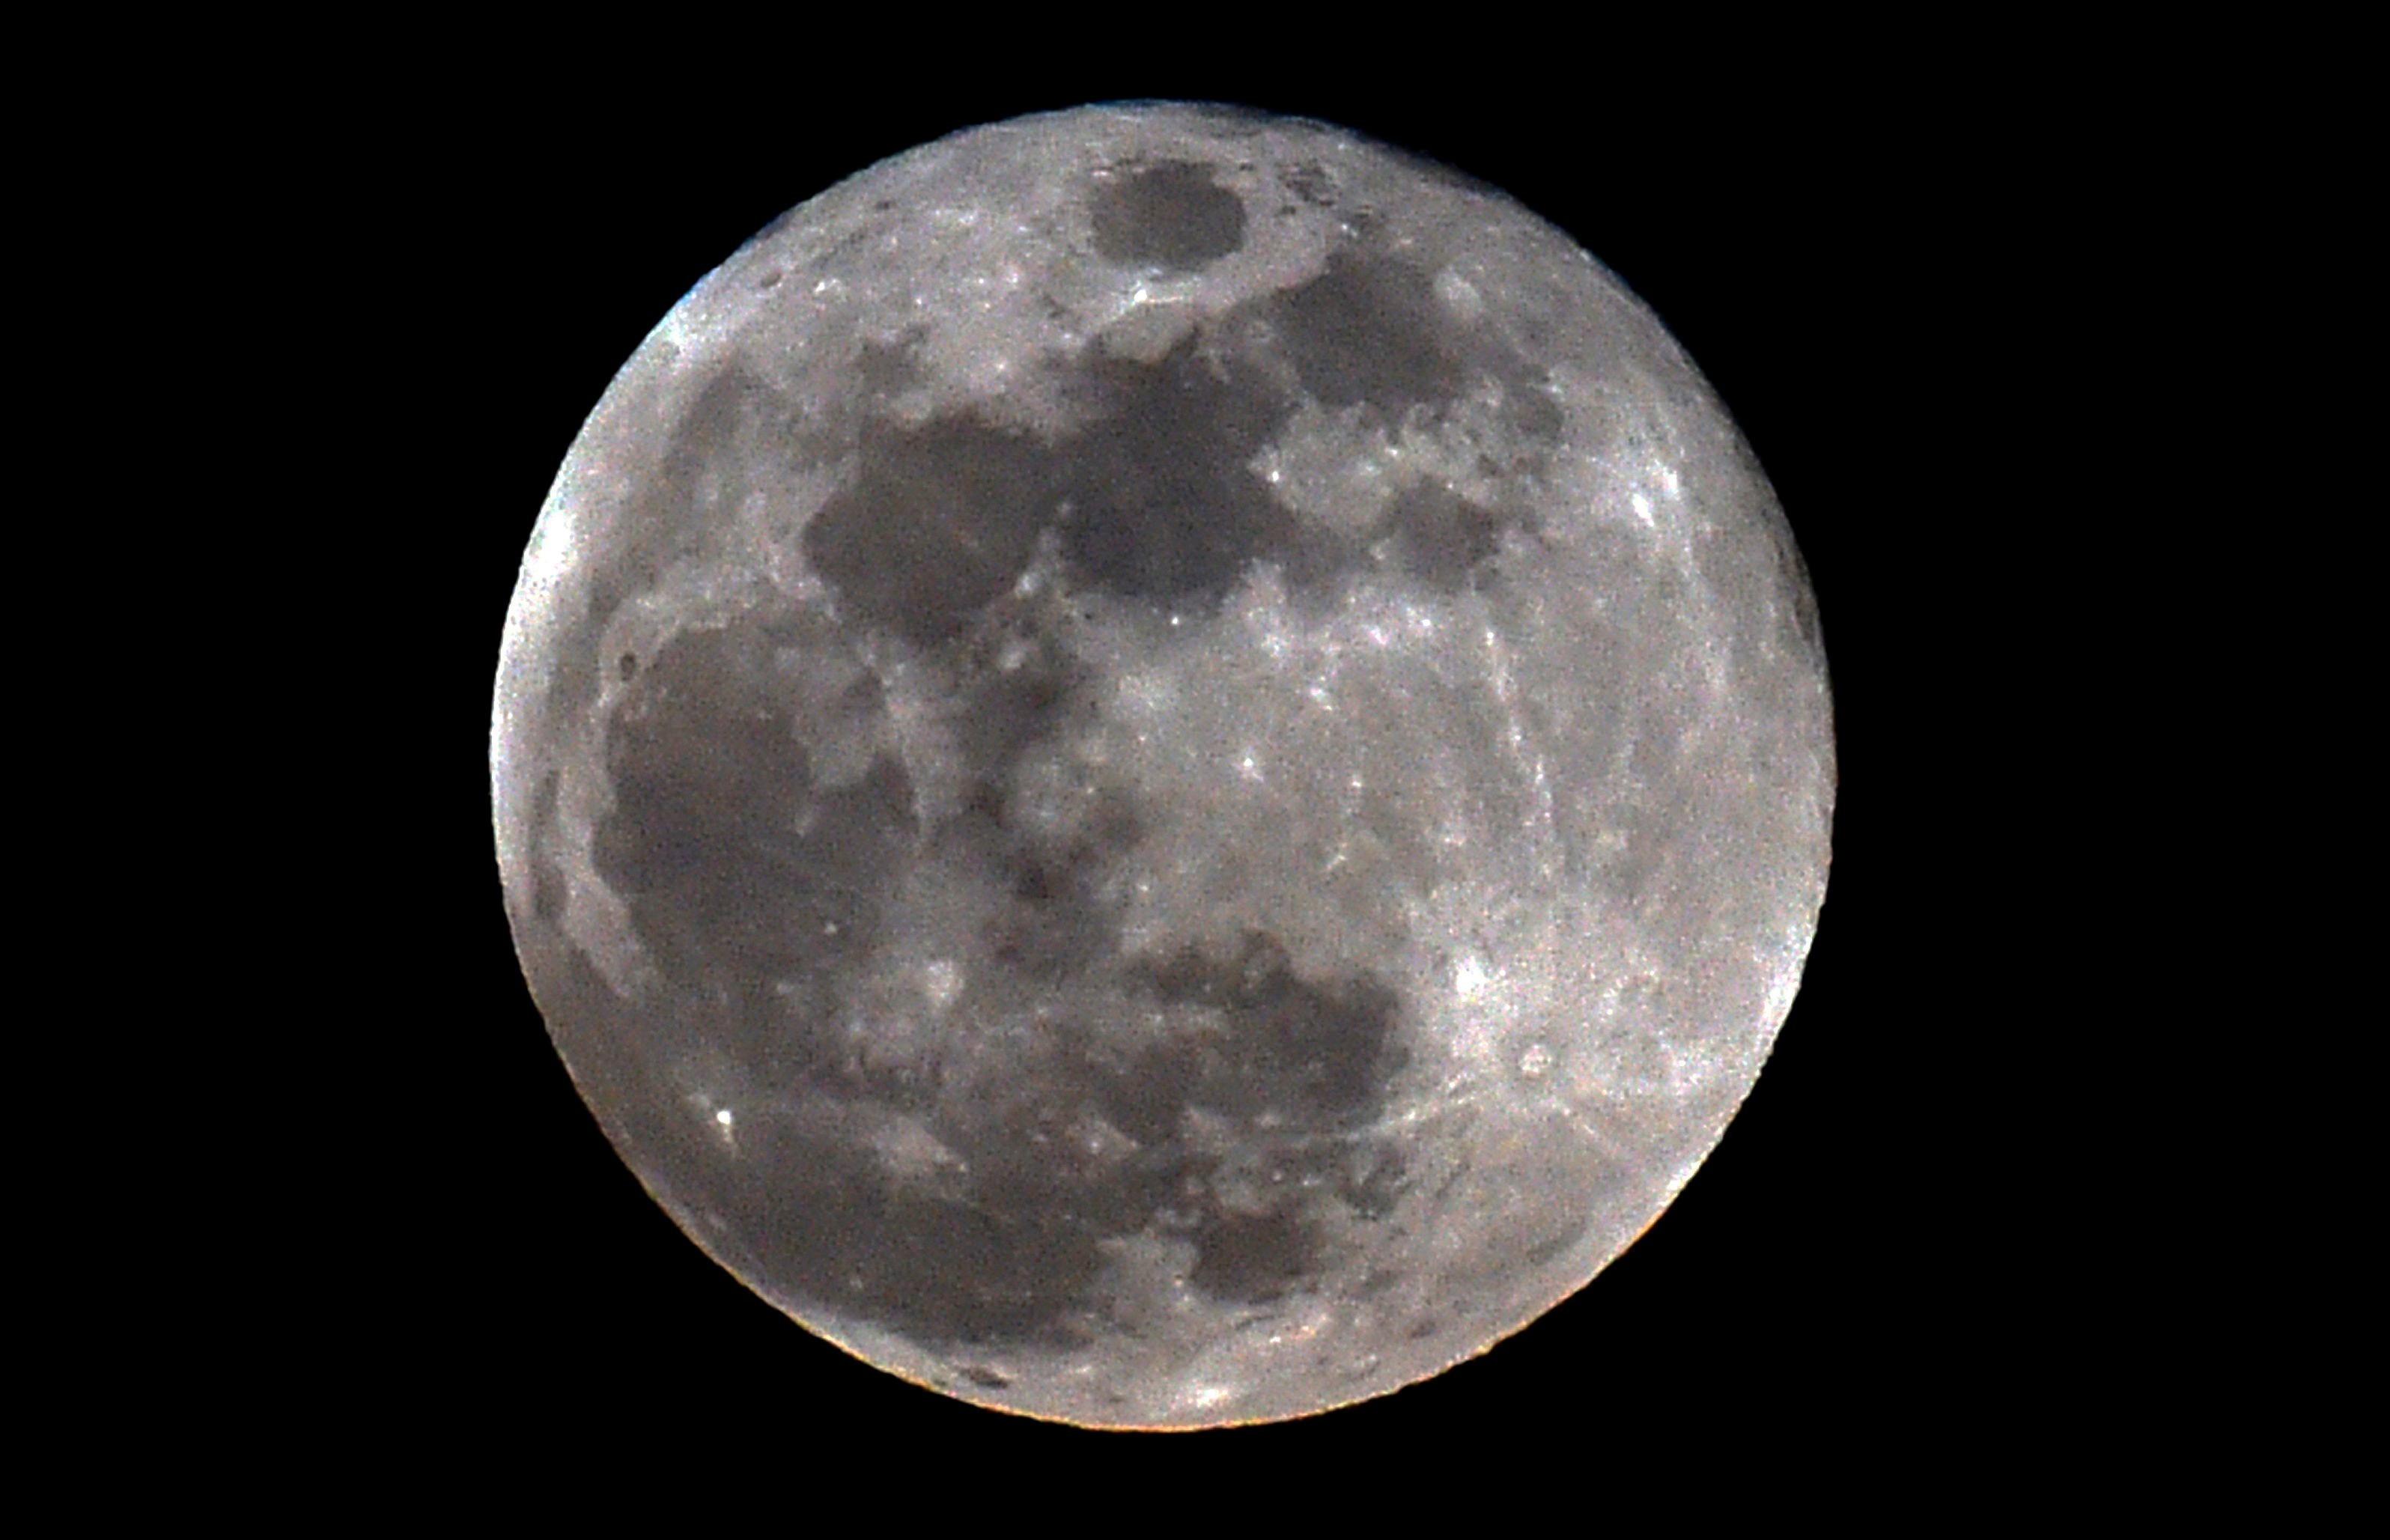 A  penumbral  lunar eclipse is coming this weekend. What does this mean?